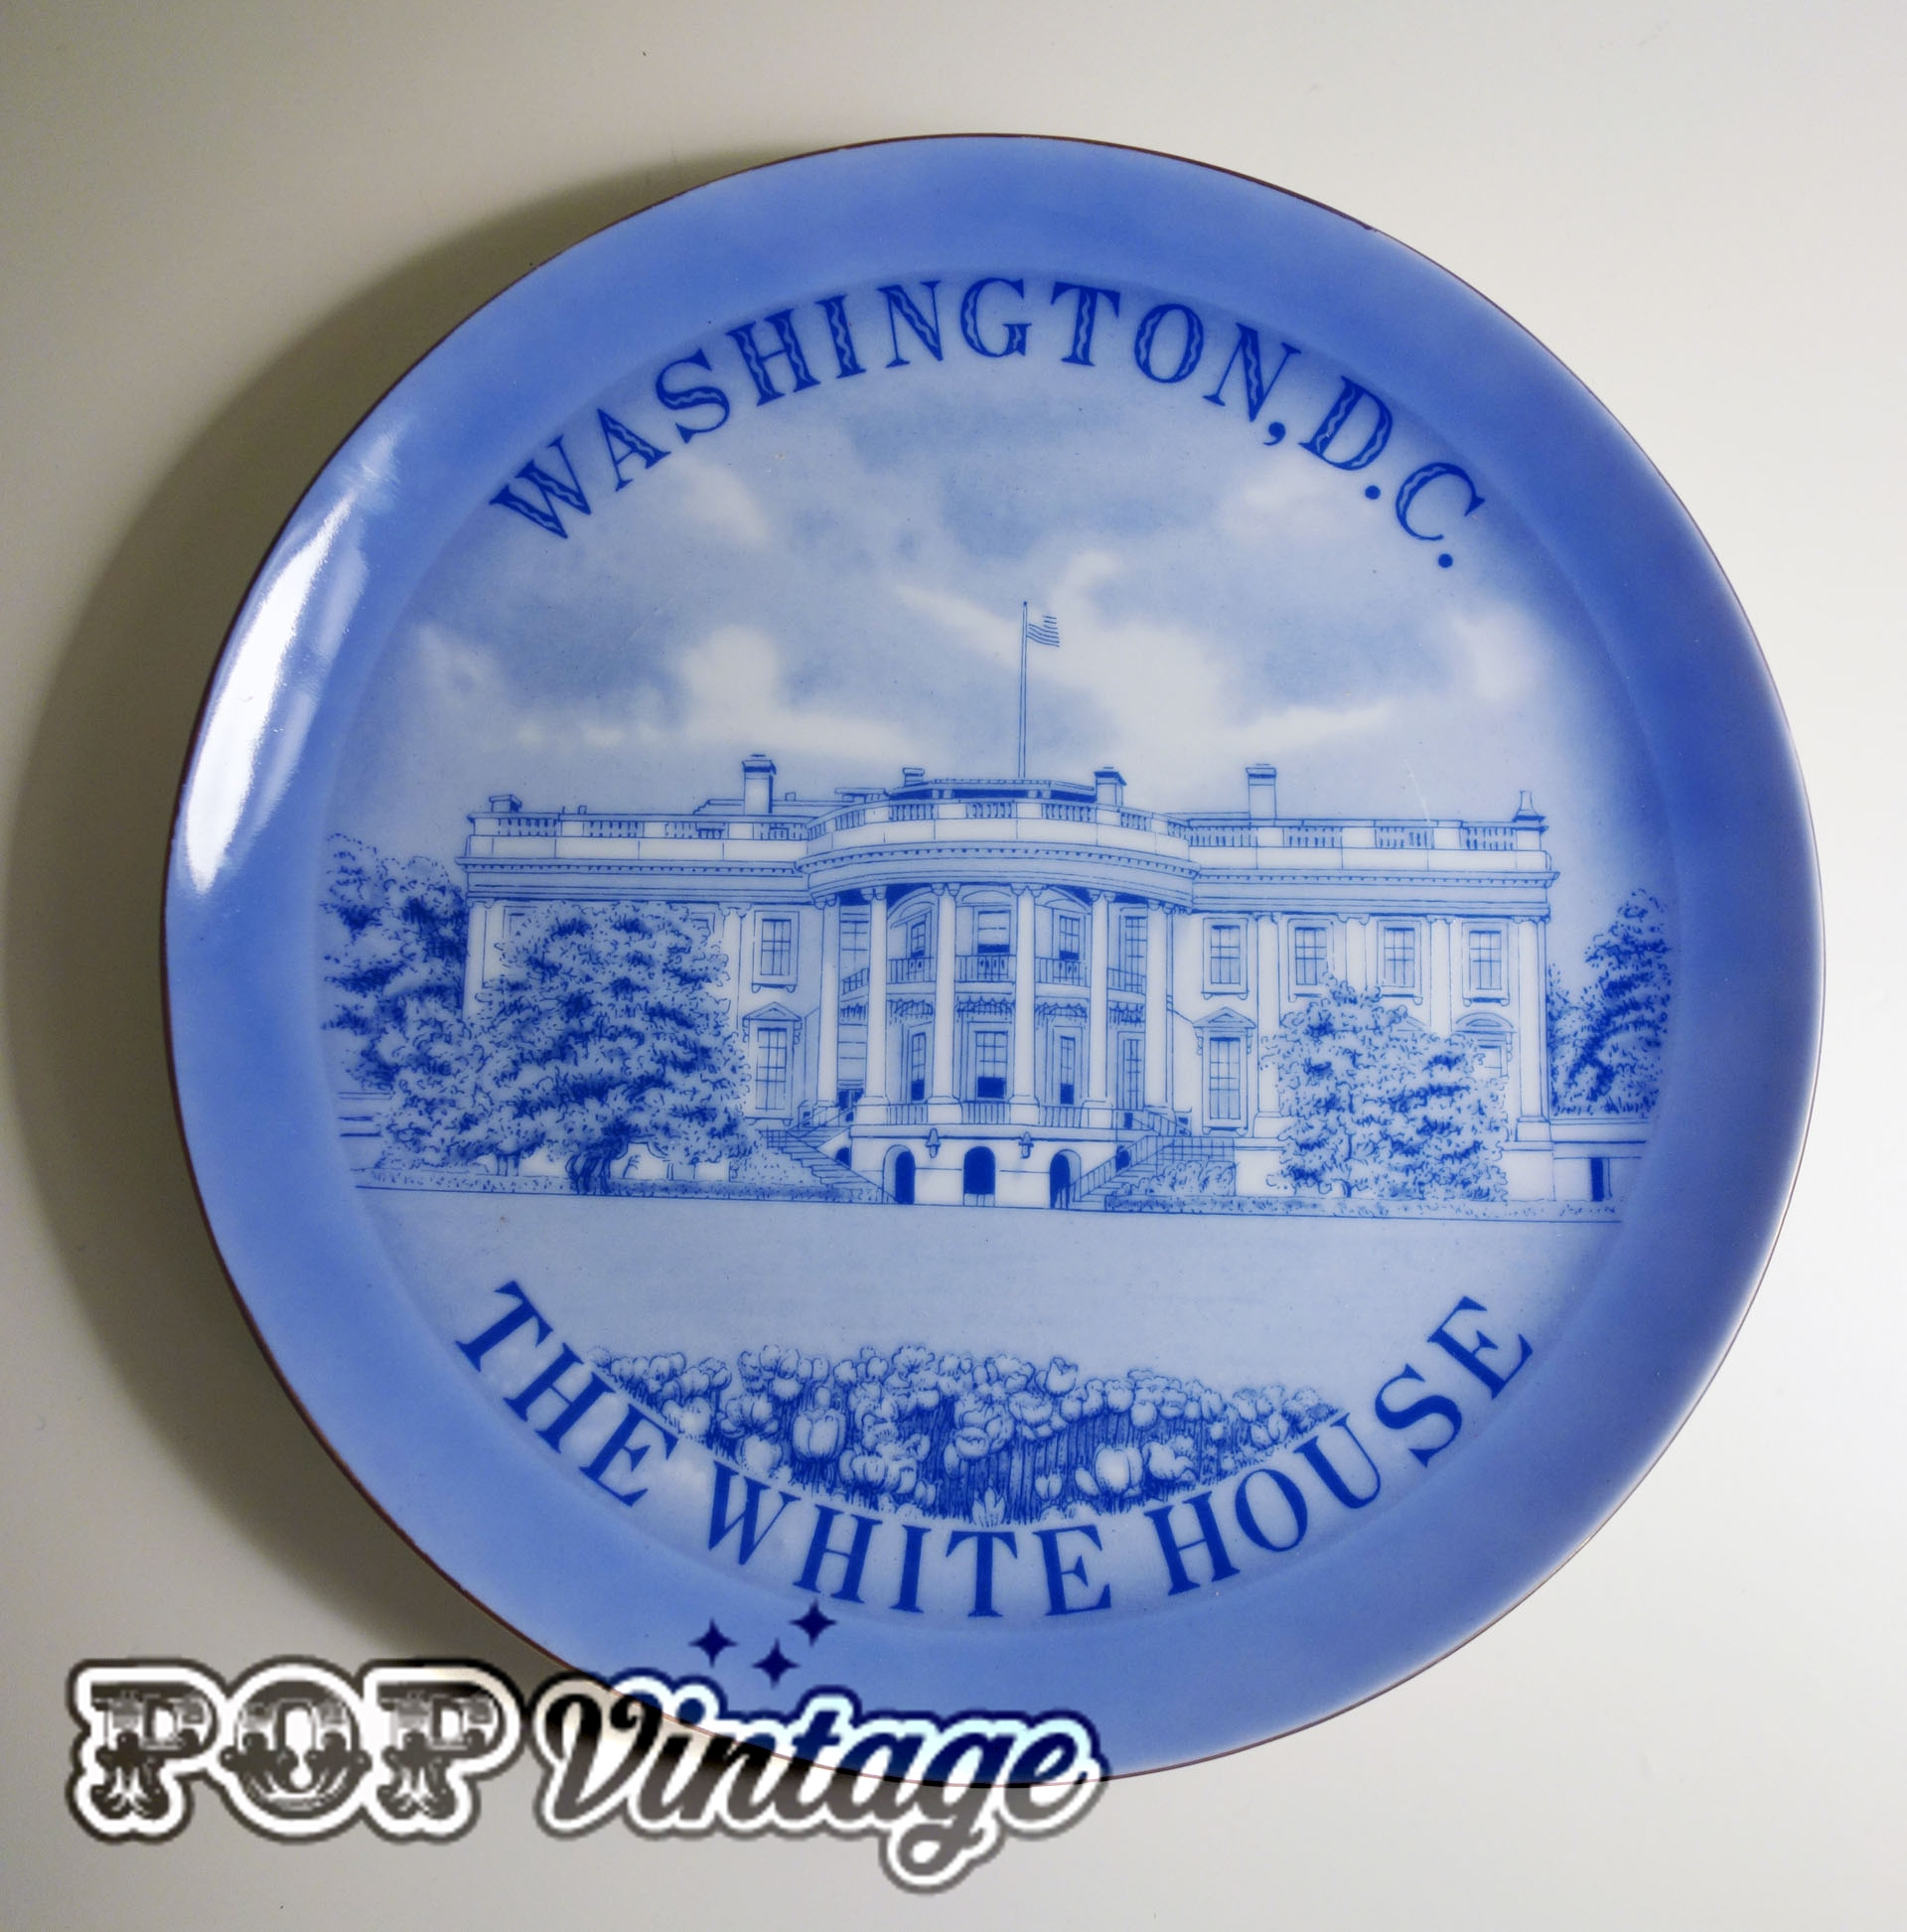 White House Commemorative Plate